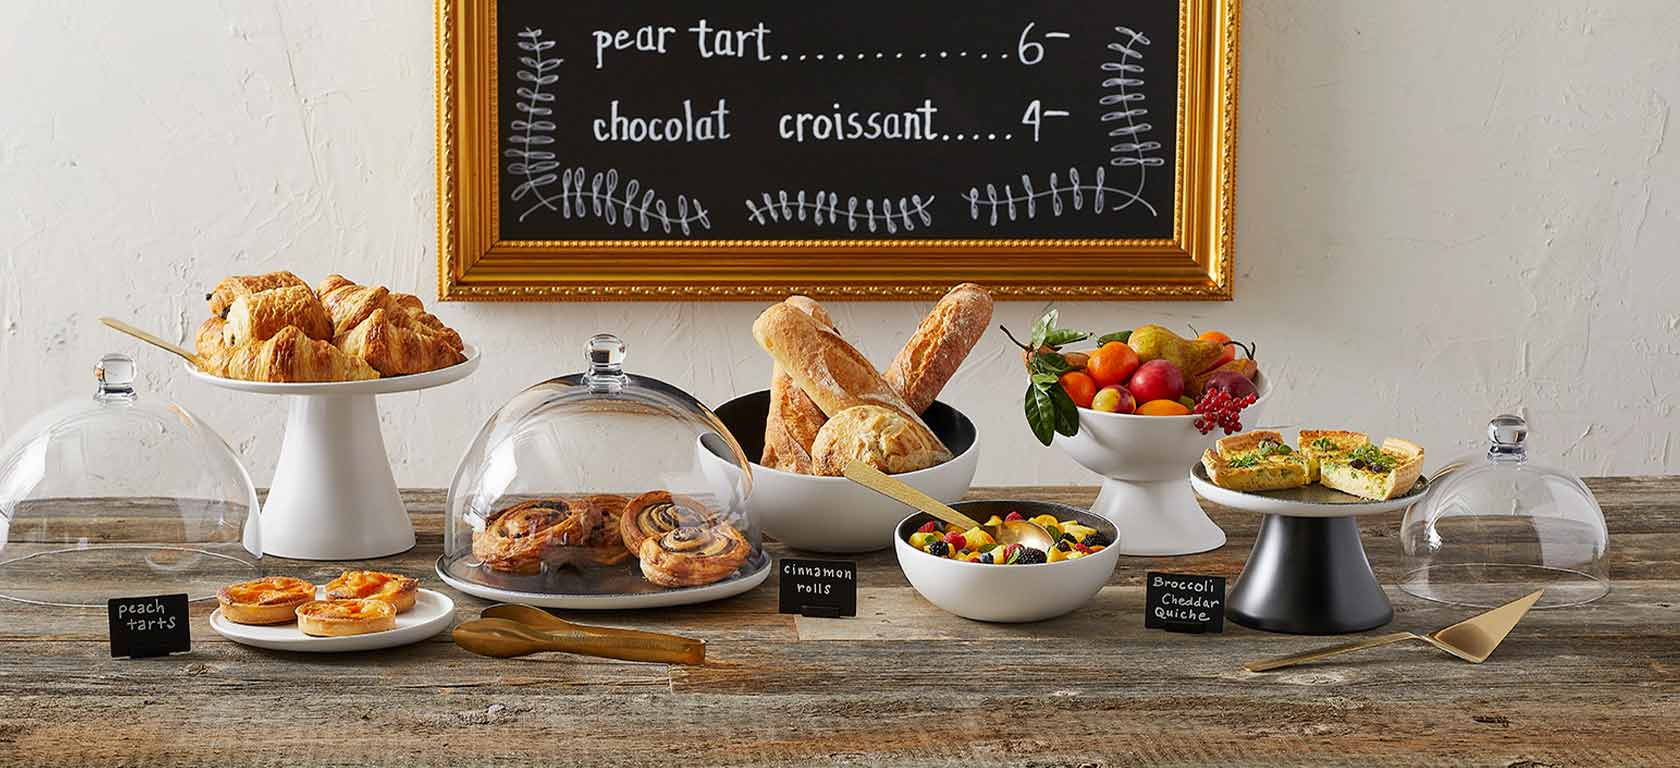 Array of bakery dishes like bowls and glass displays, containing an array of baked goods.